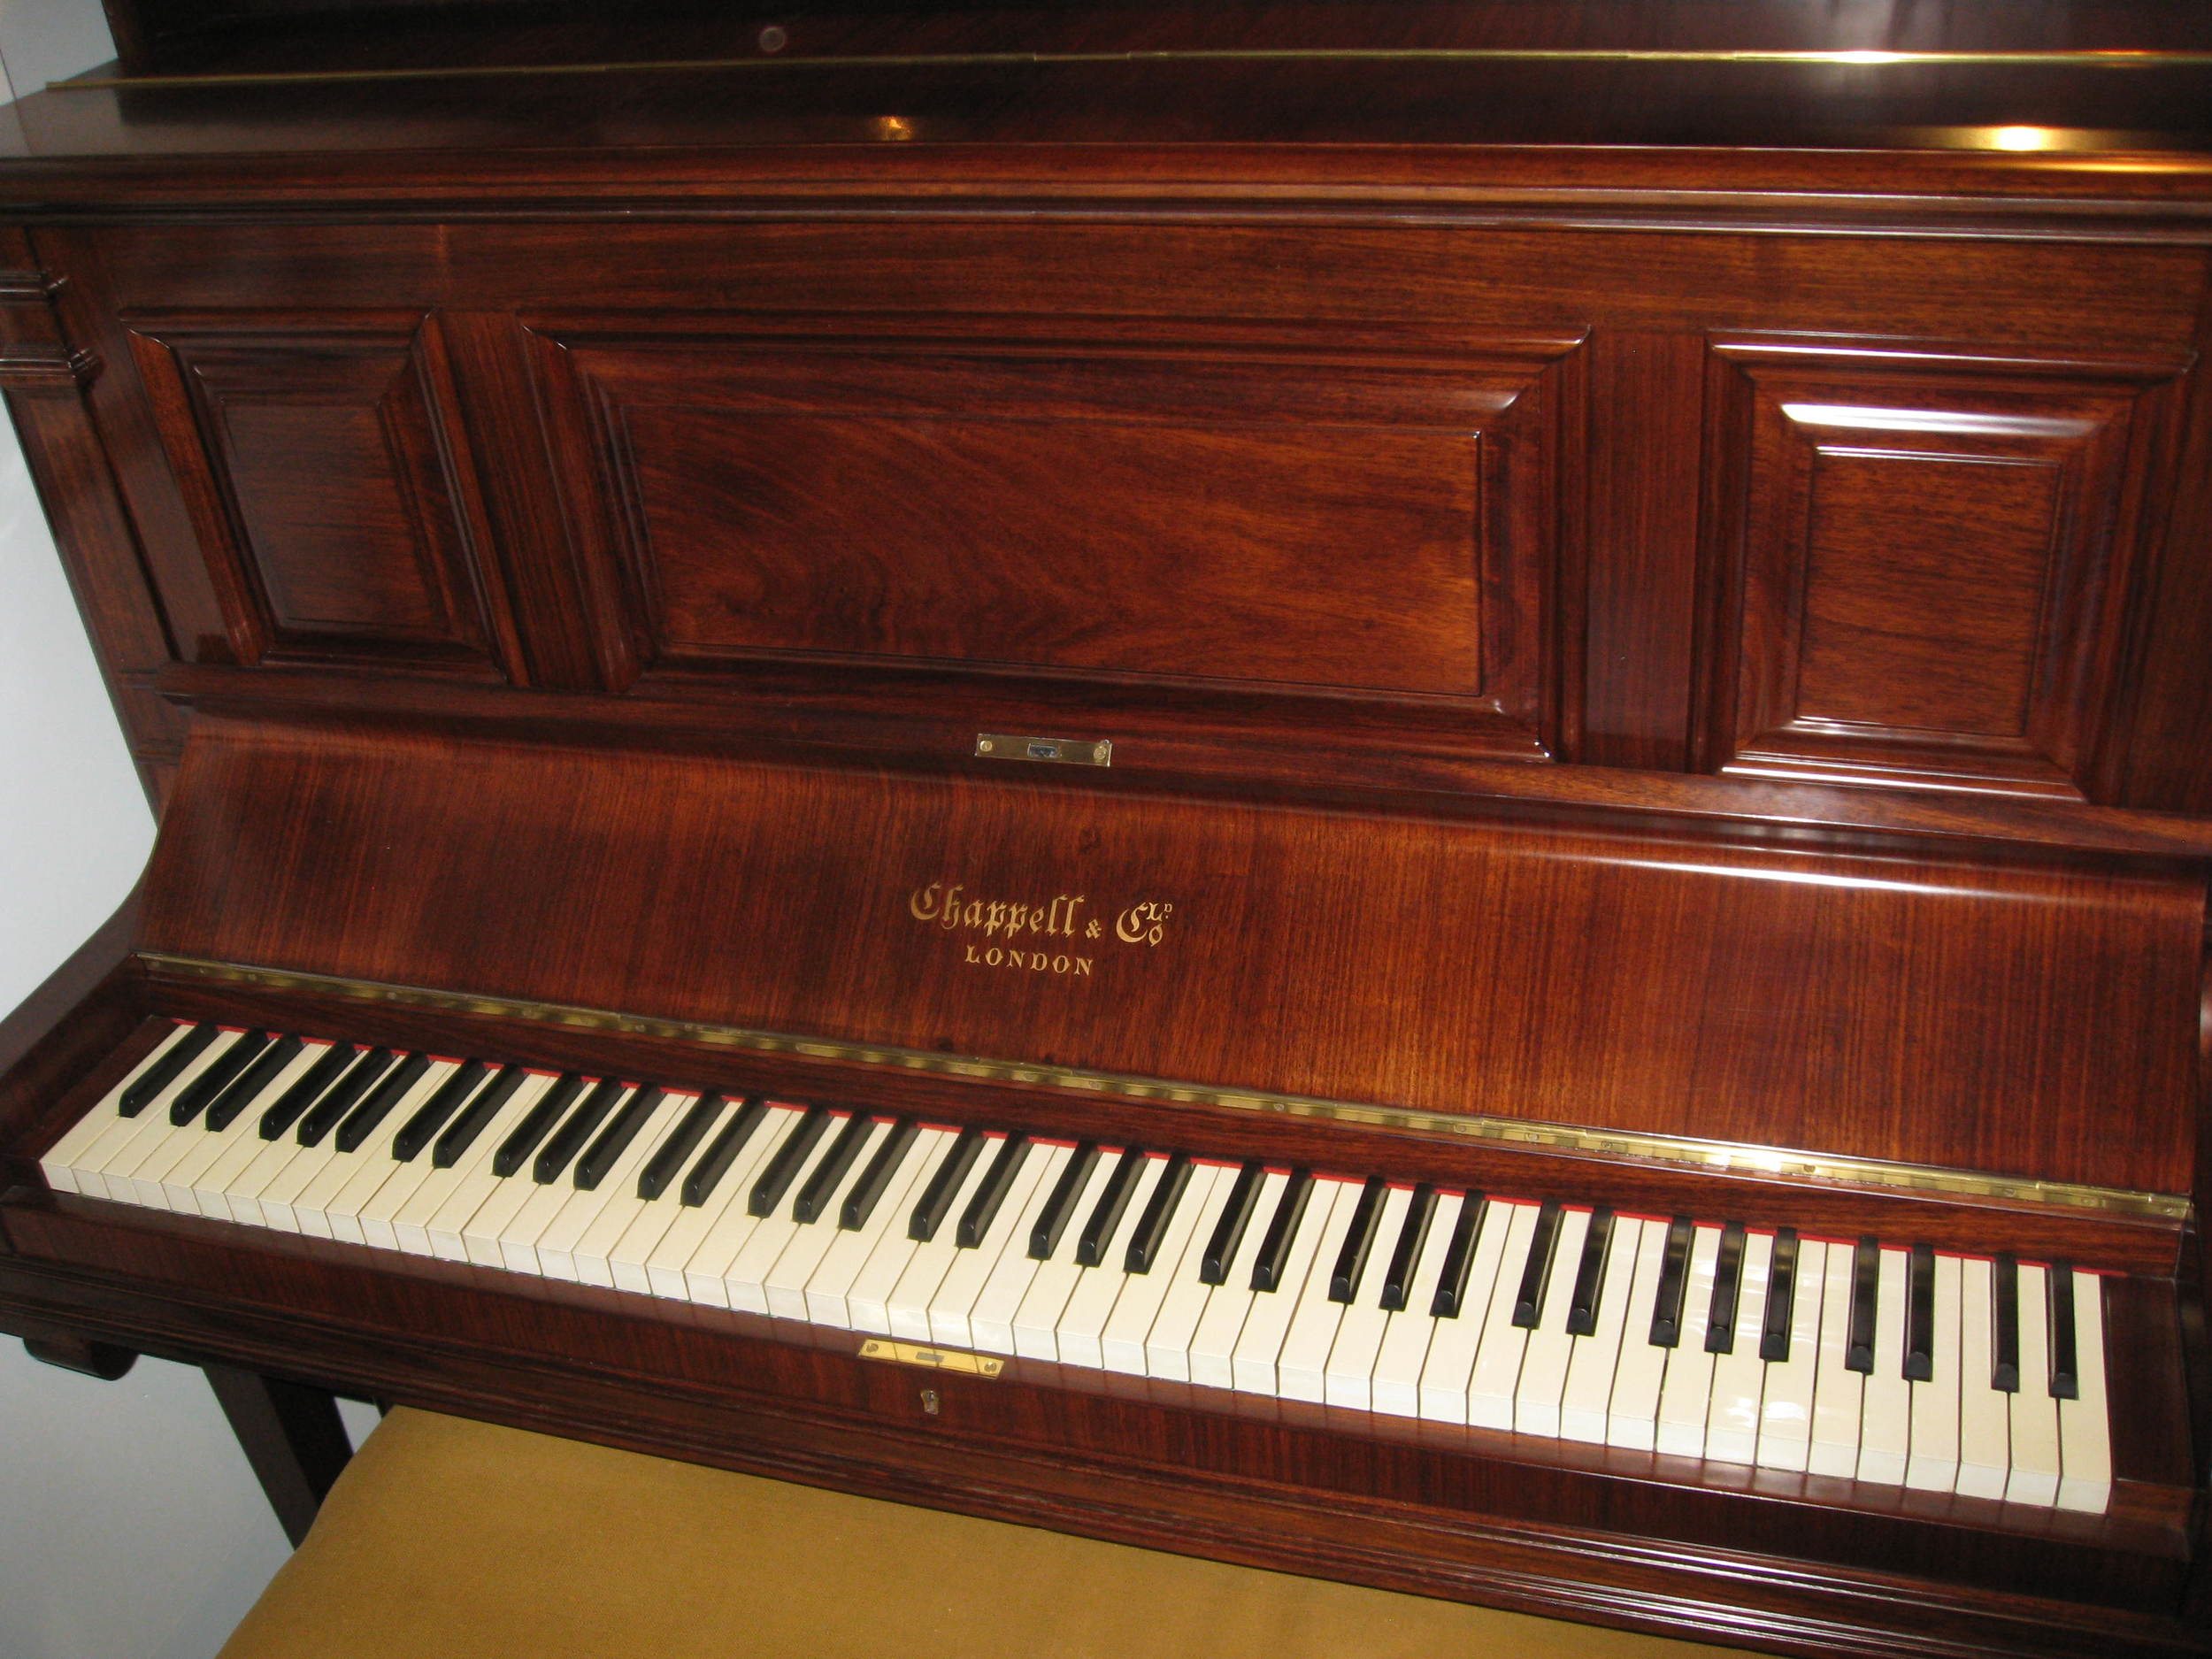 Chappell & Co Rosewood Upright